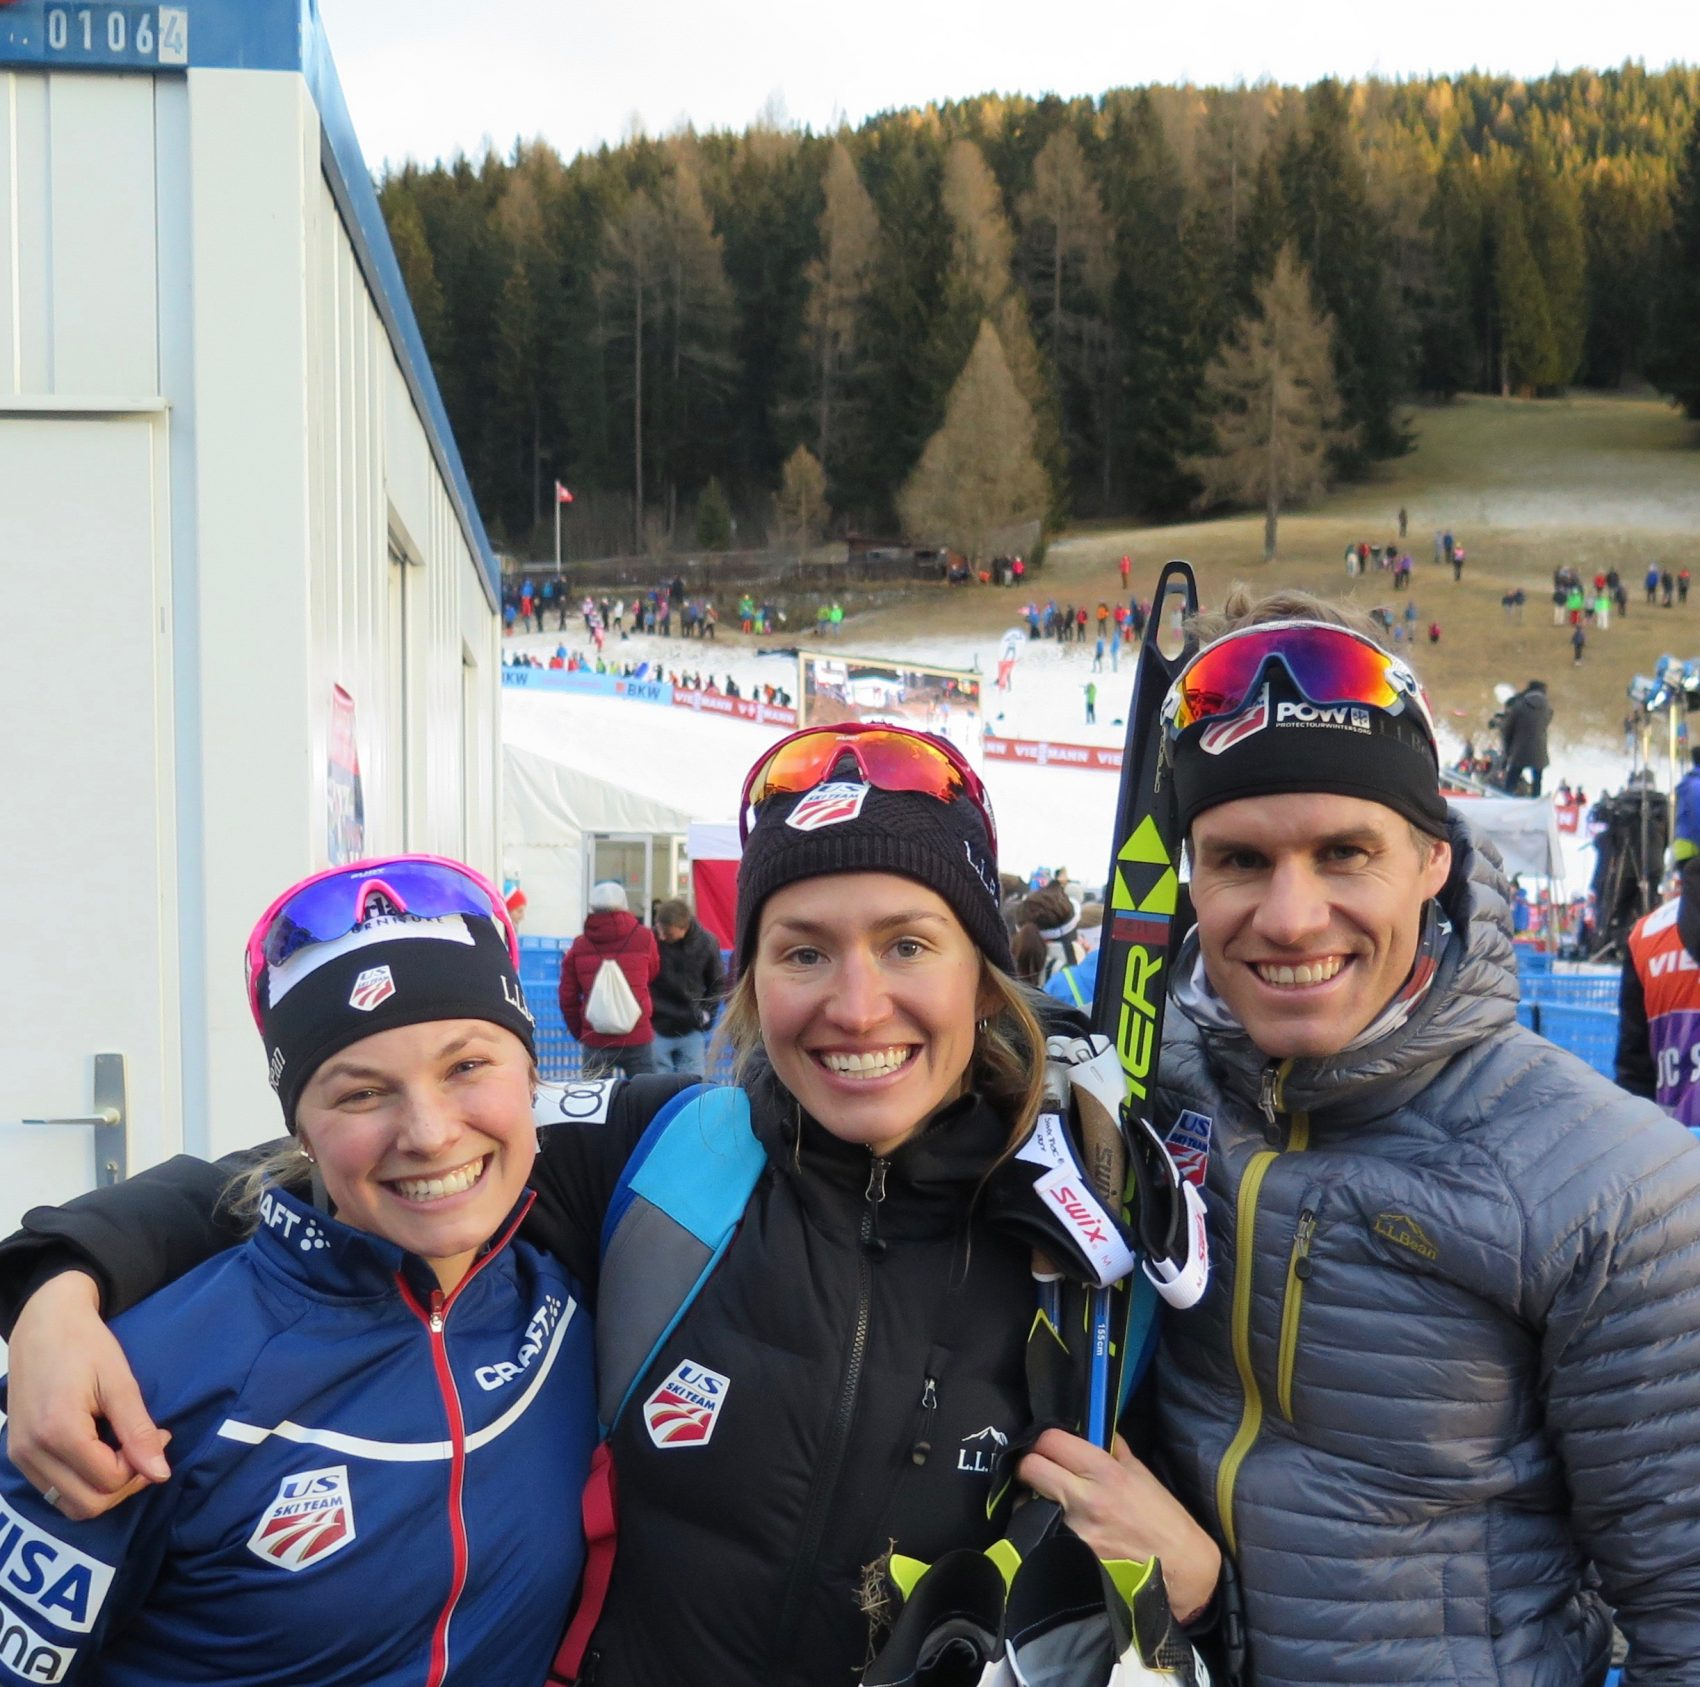 Sophie (middle) with Olympic teammates Jessie Diggins (left) and Simi Hamilton (right). (Courtesy Sverre Caldwell)